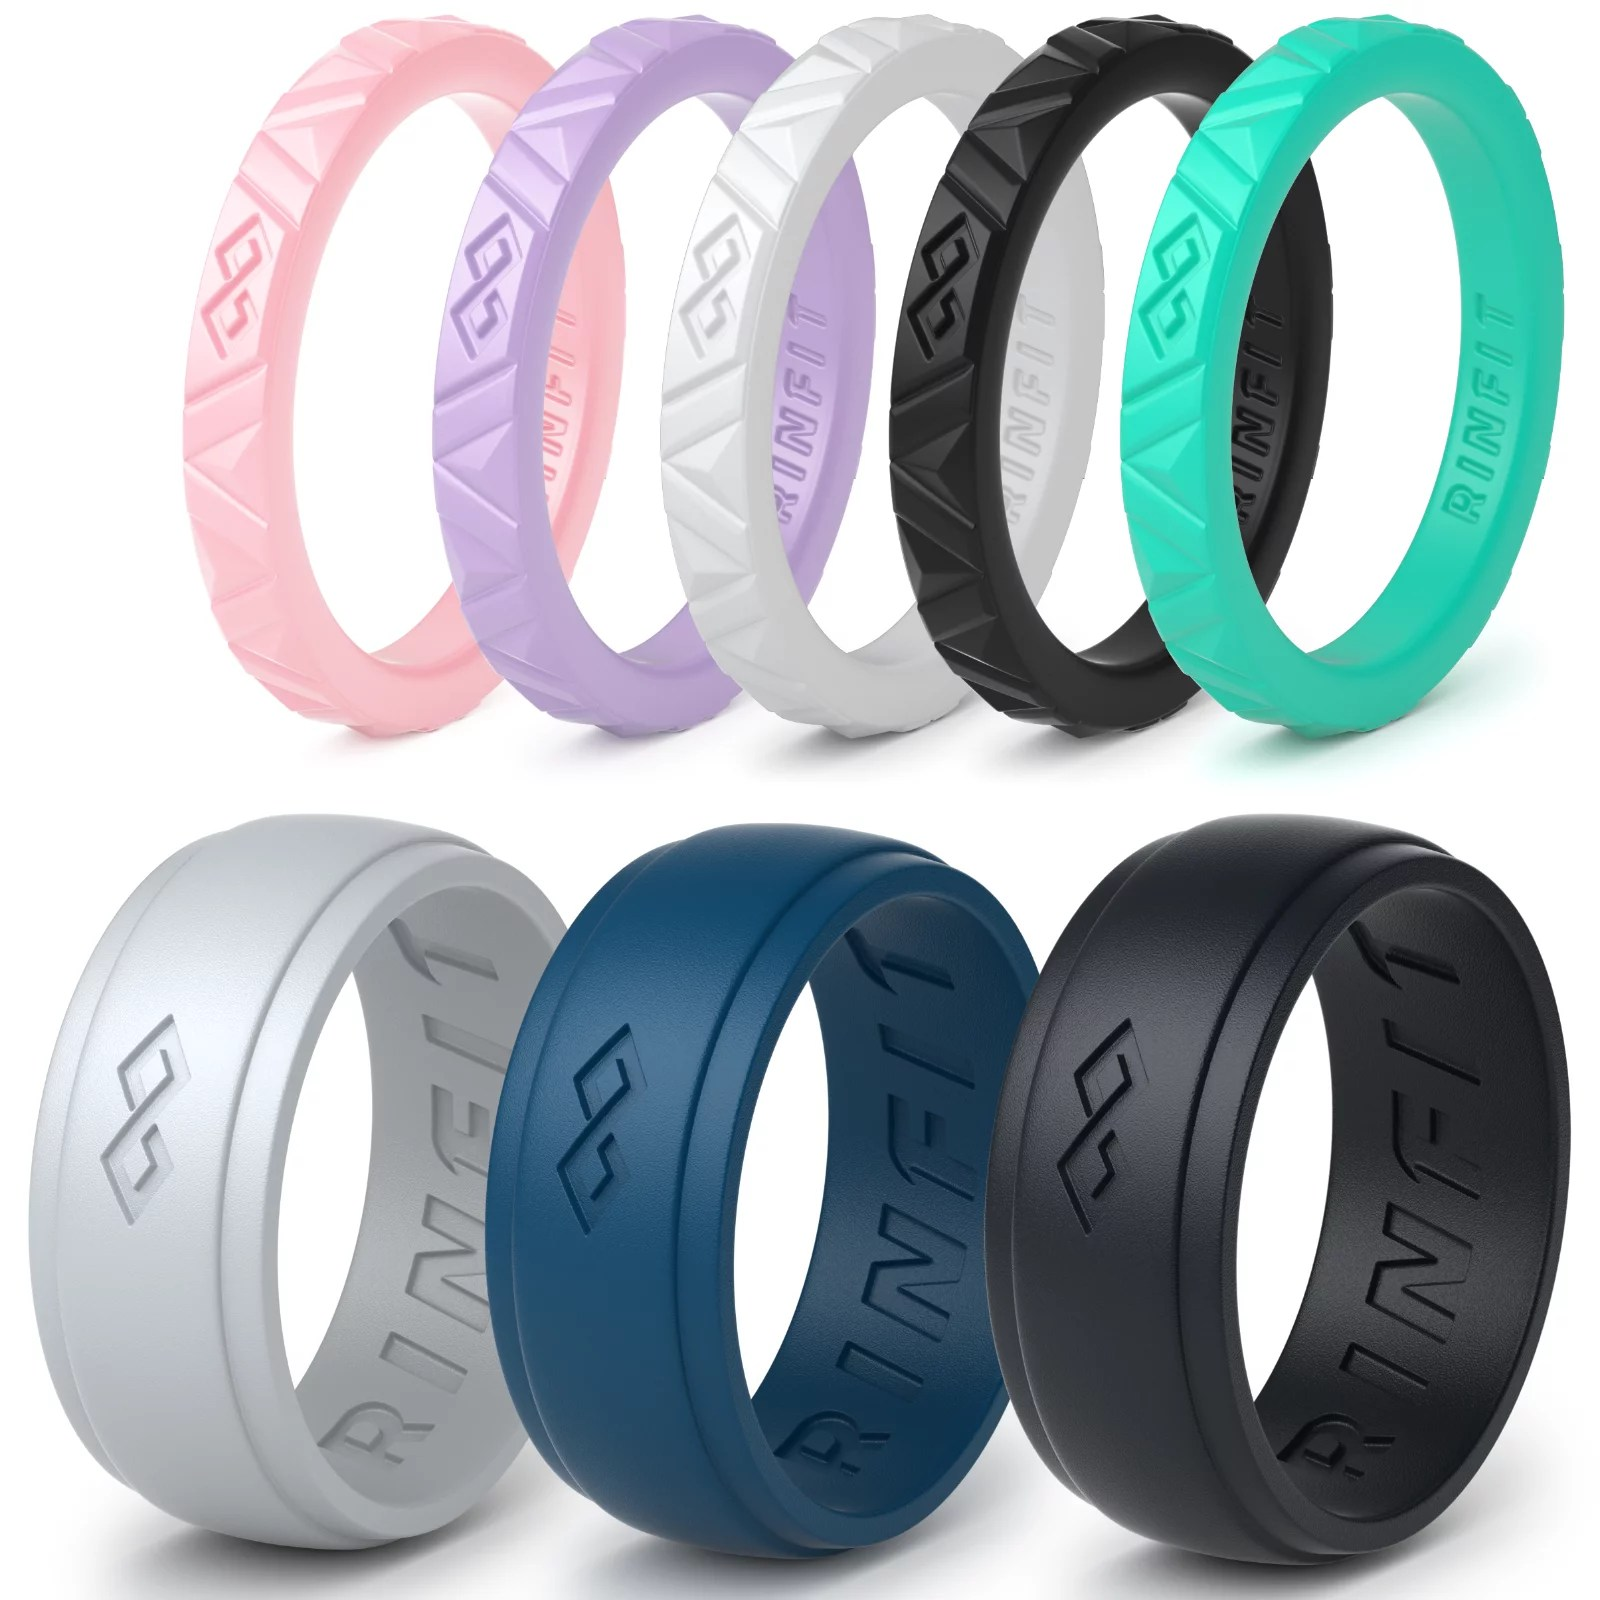 rinfit silicone wedding rings rubber wedding bands for men and women 8 ring pack by rinfit walmart com